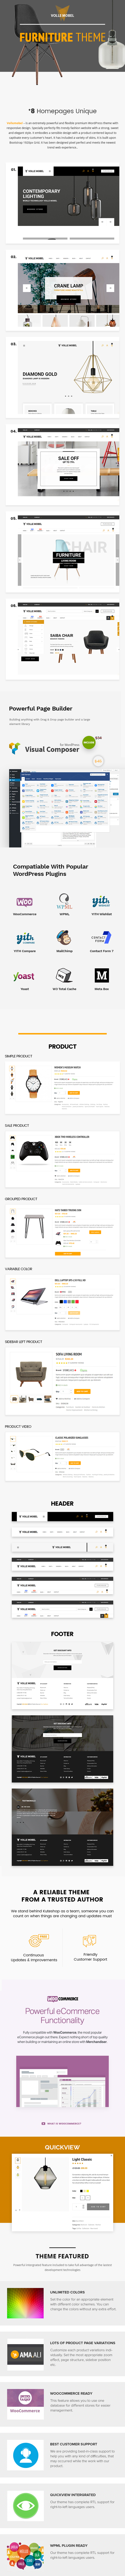 Vollemobel - Möbel WooCommerce WordPress Layout - 4